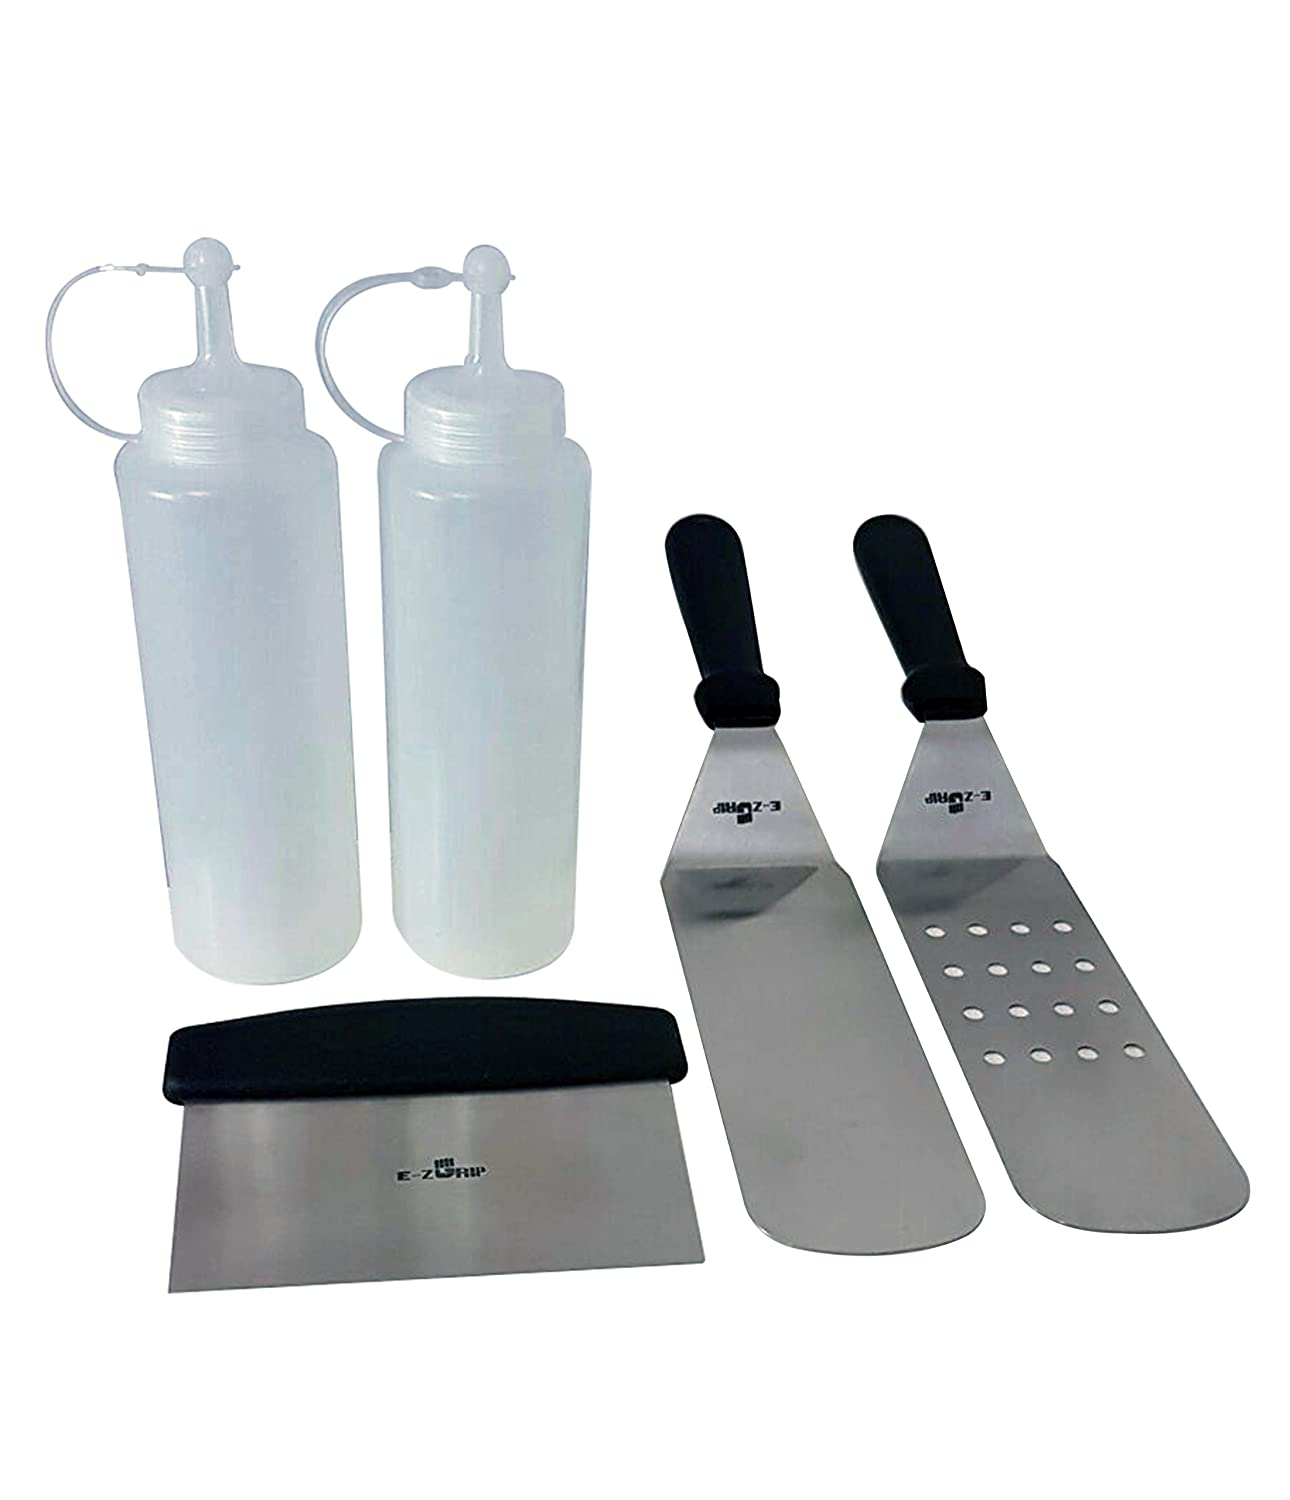 5 Piece BBQ Grill and Griddle Tool Kit from E-Z Grip, 2 Spatulas, 1 Chopper, 2 Condiment Dispensers, Perfect for both Outdoors and Indoors, Professional Grade Stainless Steel